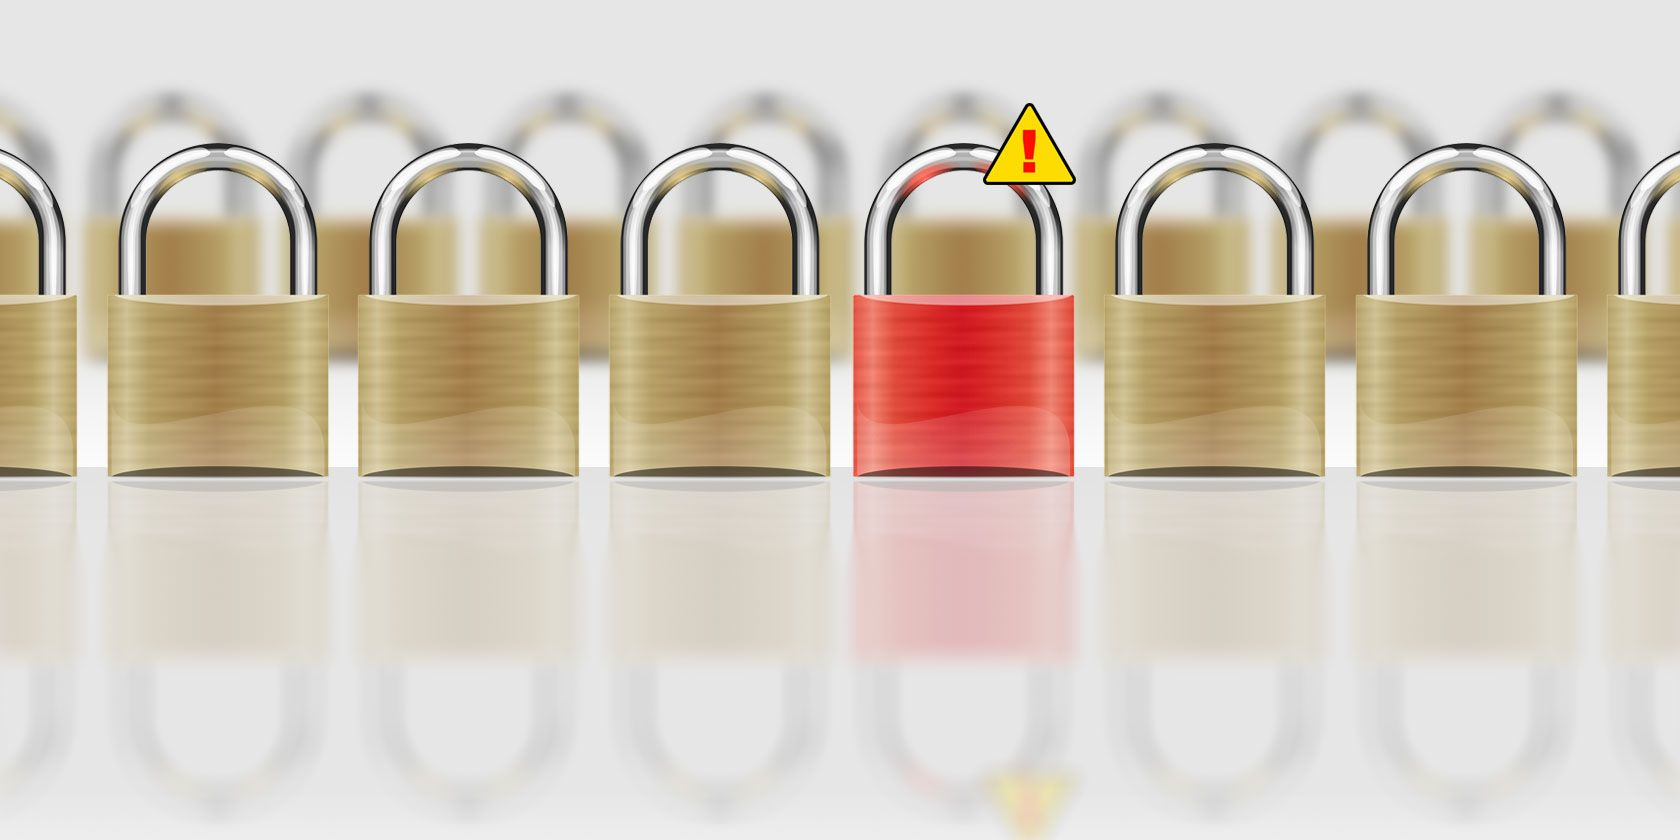 7 Myths About HTTPS and SSL Certificates You Shouldn't Believe